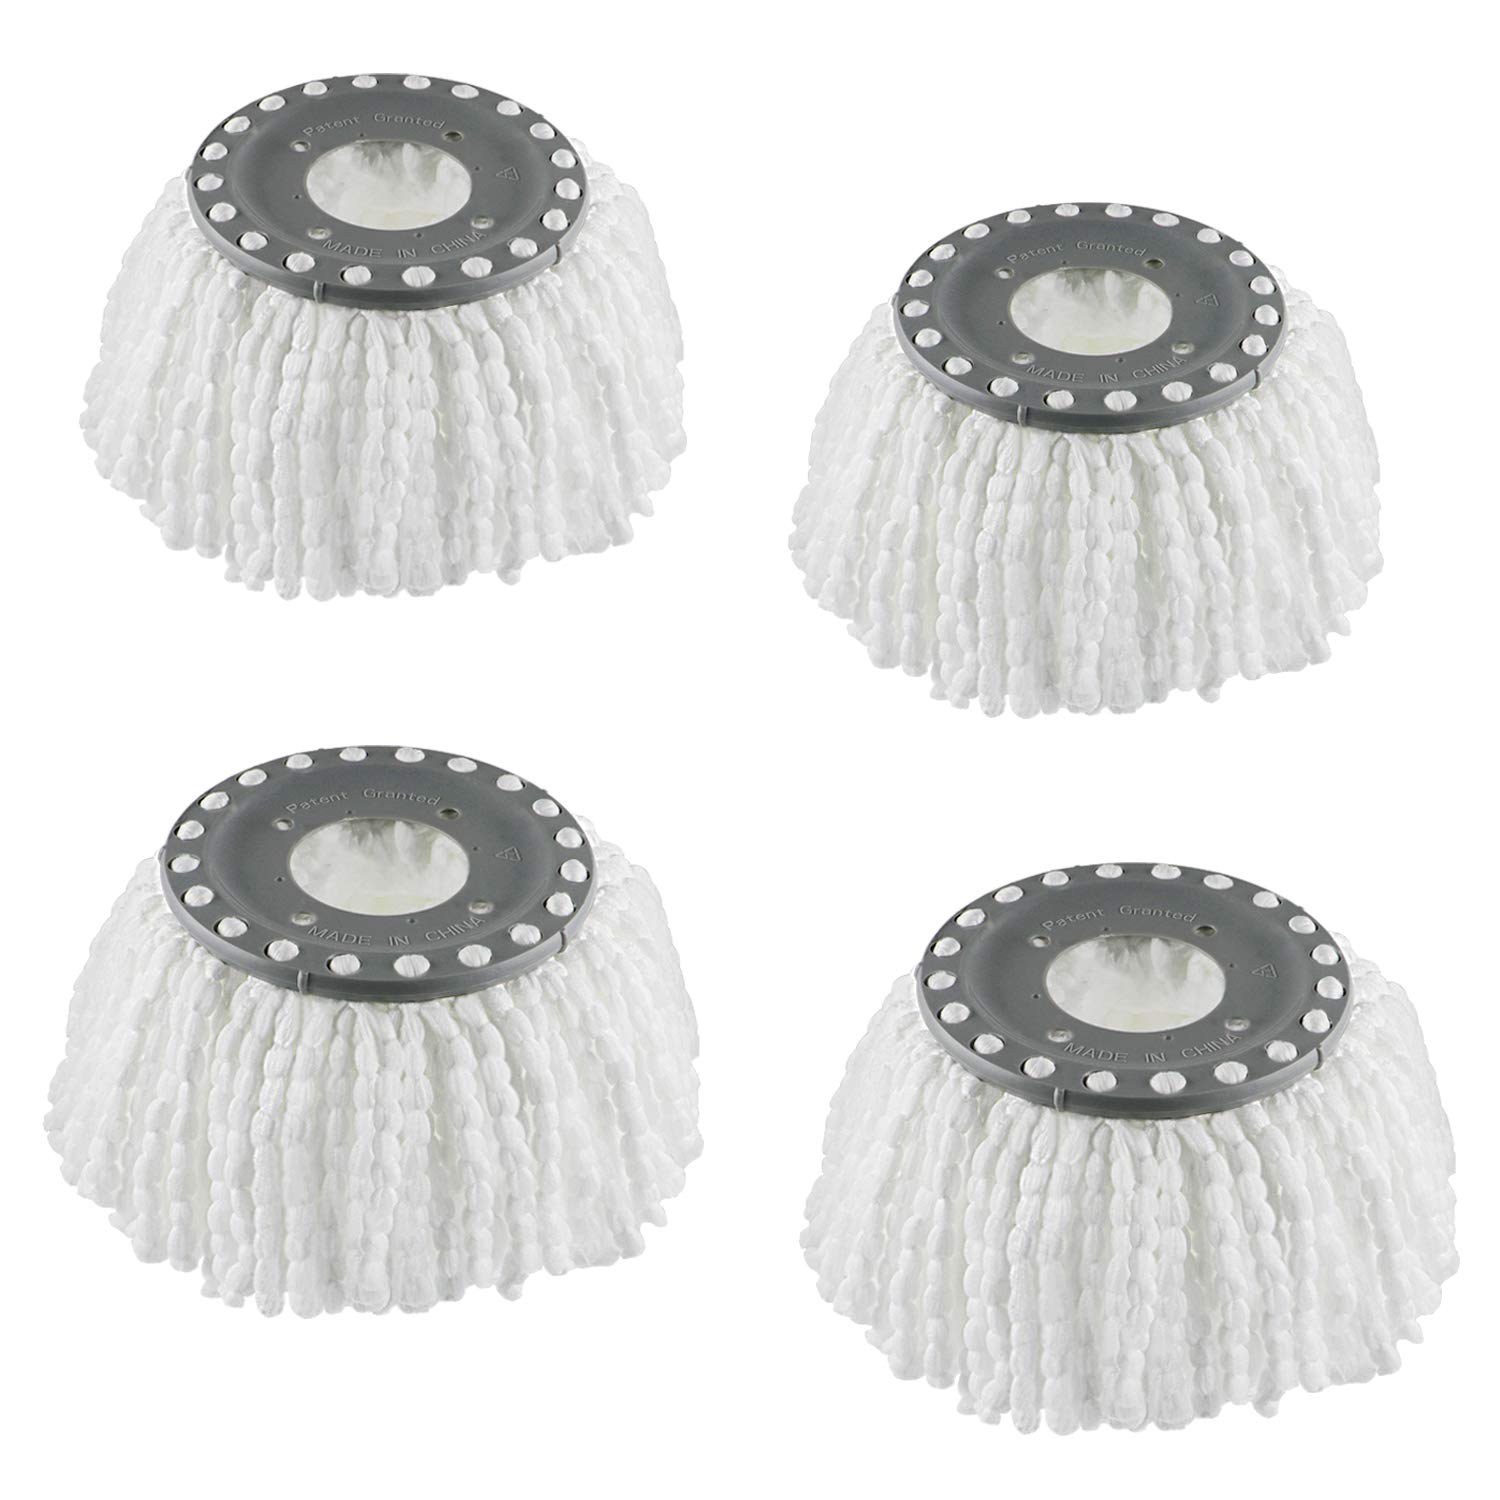 4 Replacement Mop Heads Refills for Universal 360° Spin Magic Mop, Hurricane Compatible Standard Replacement Round Spin Mop Heads Microfiber (White)